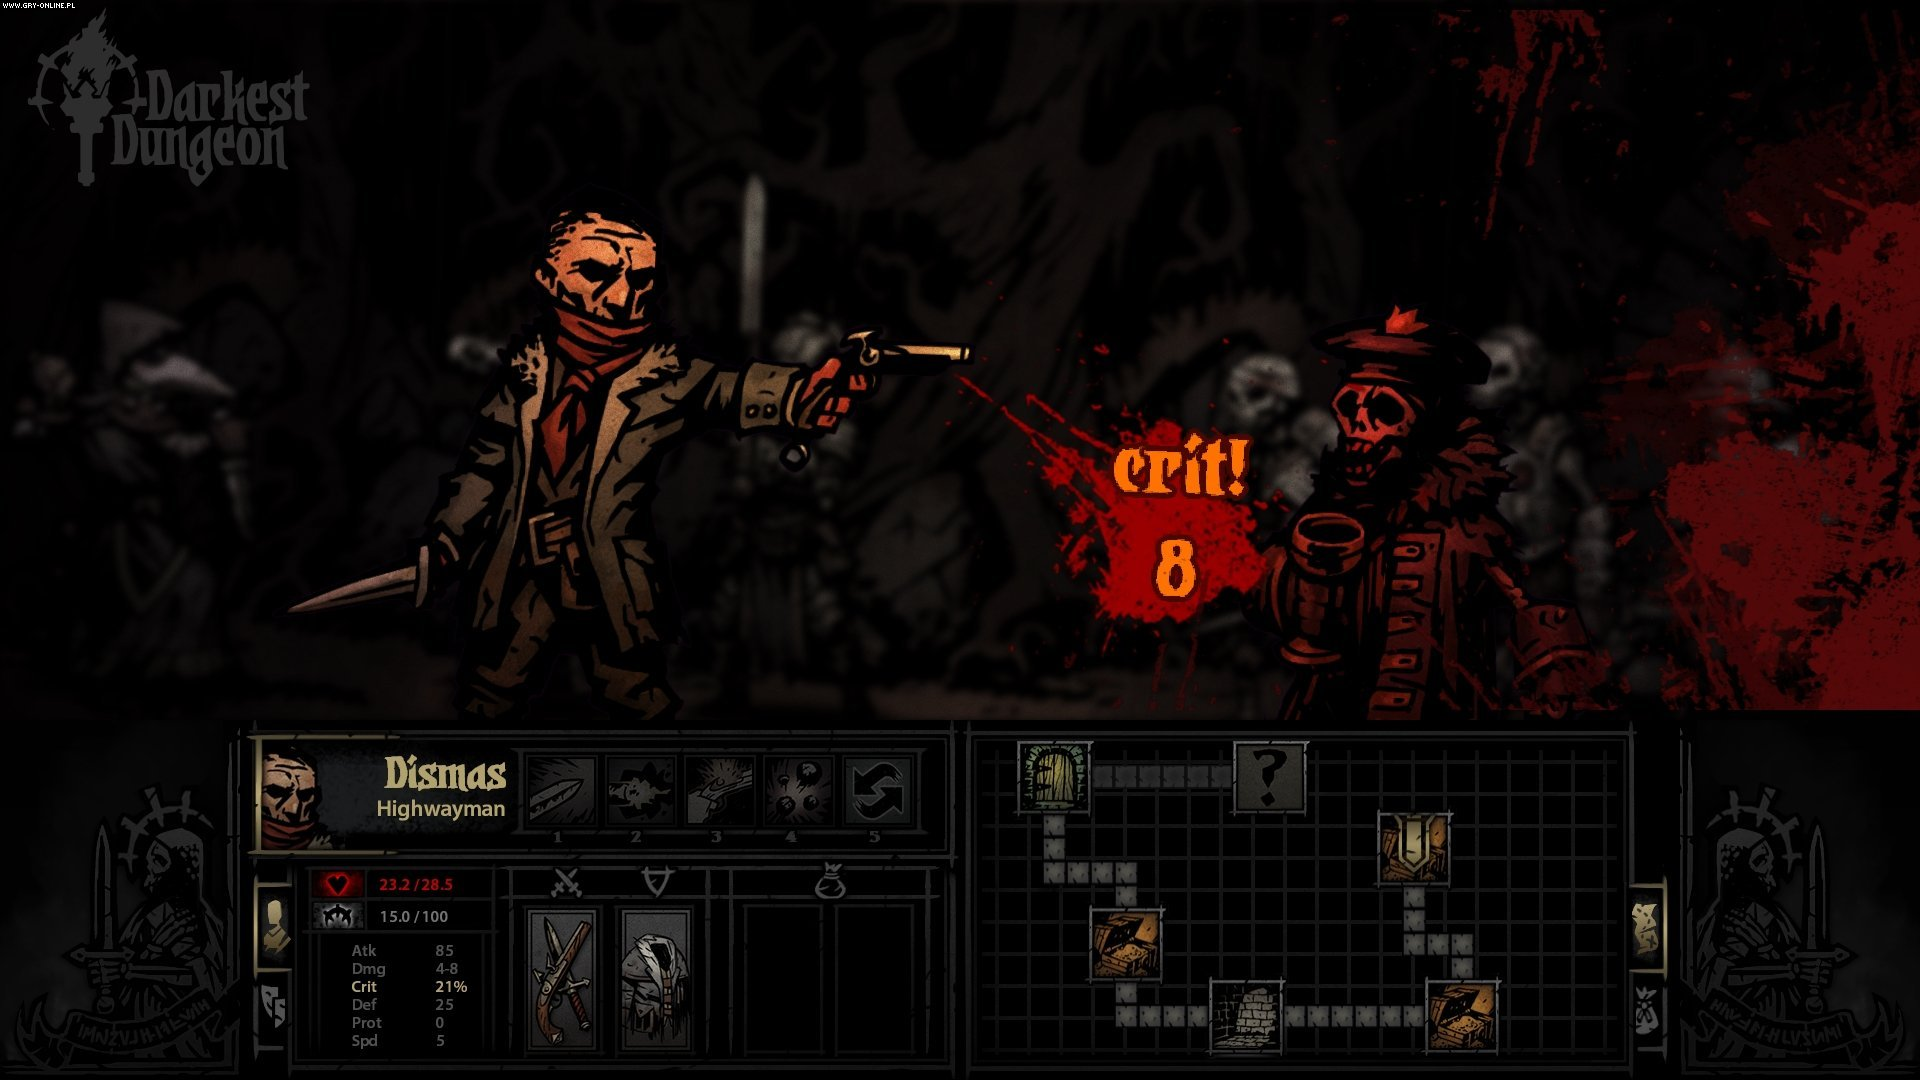 Darkest Dungeon PC, PSV, PS4 Games Image 108/108, Red Hook Studios